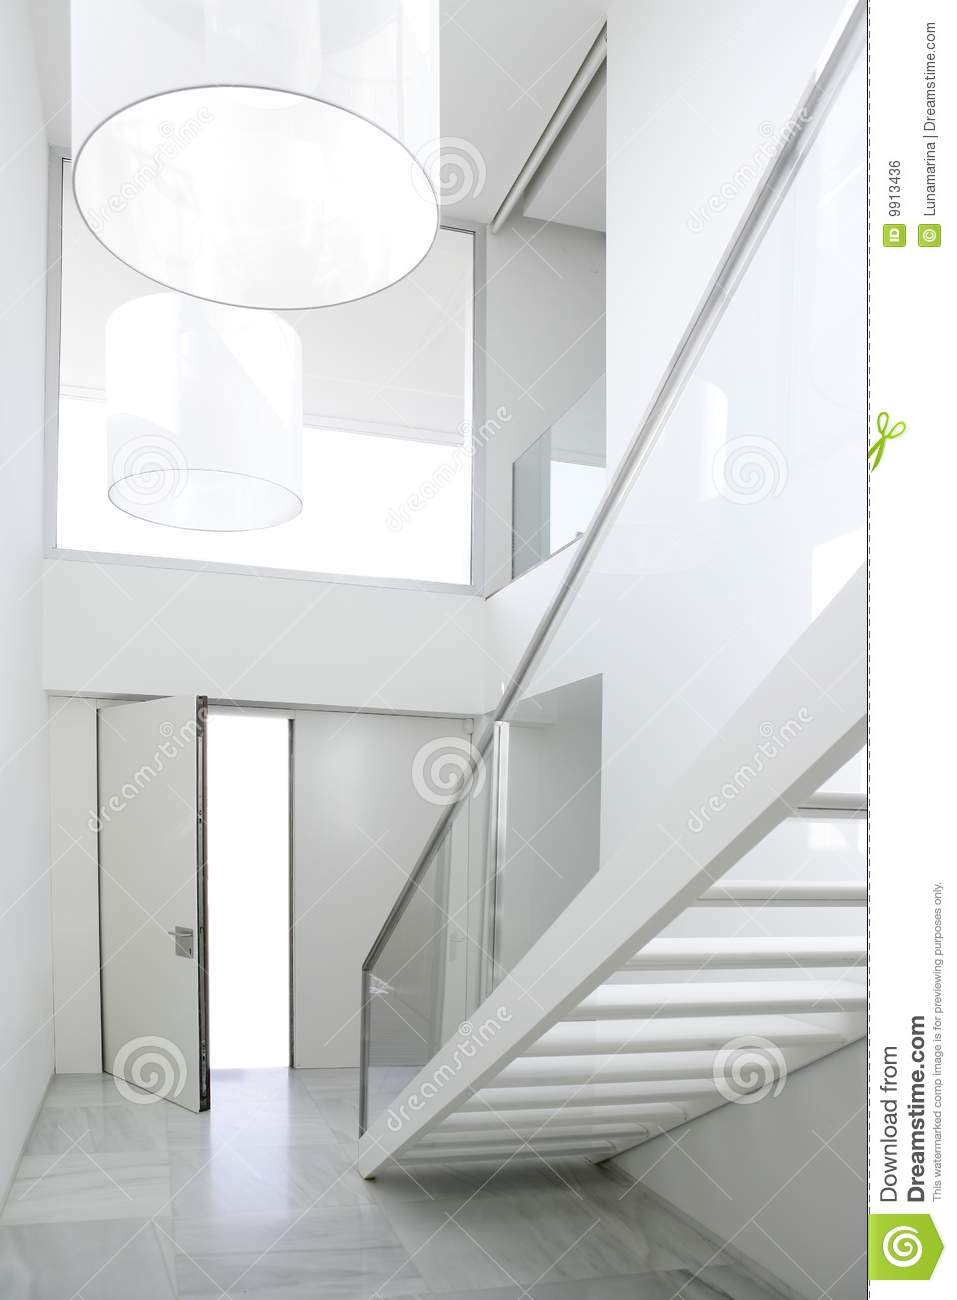 Home interior stair white architecture lobby